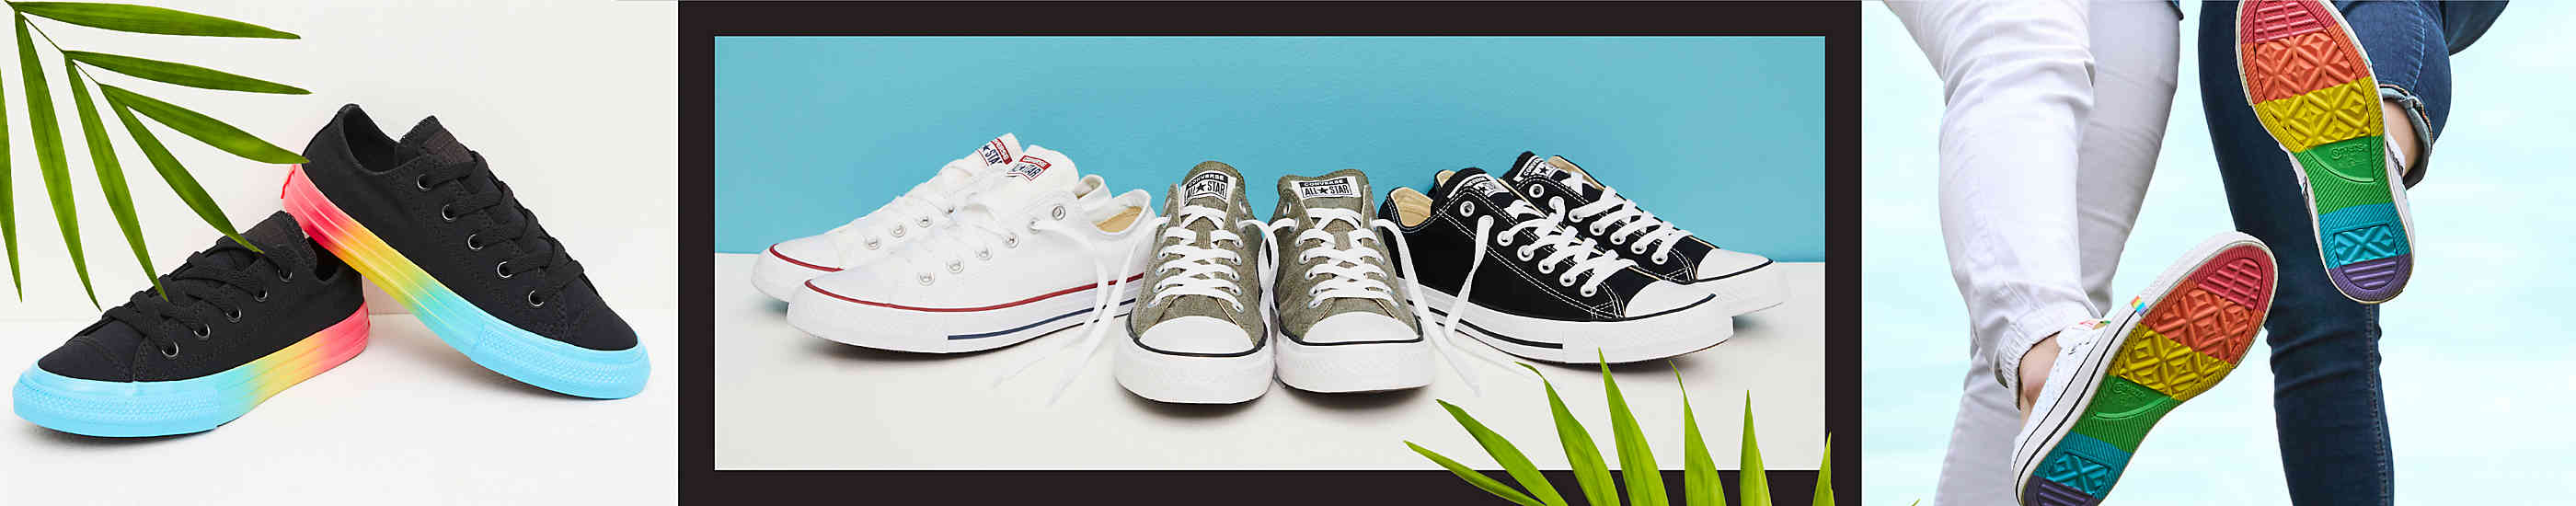 ee30e63c Converse All-Star High Tops & Sneakers | Chuck Taylors | DSW